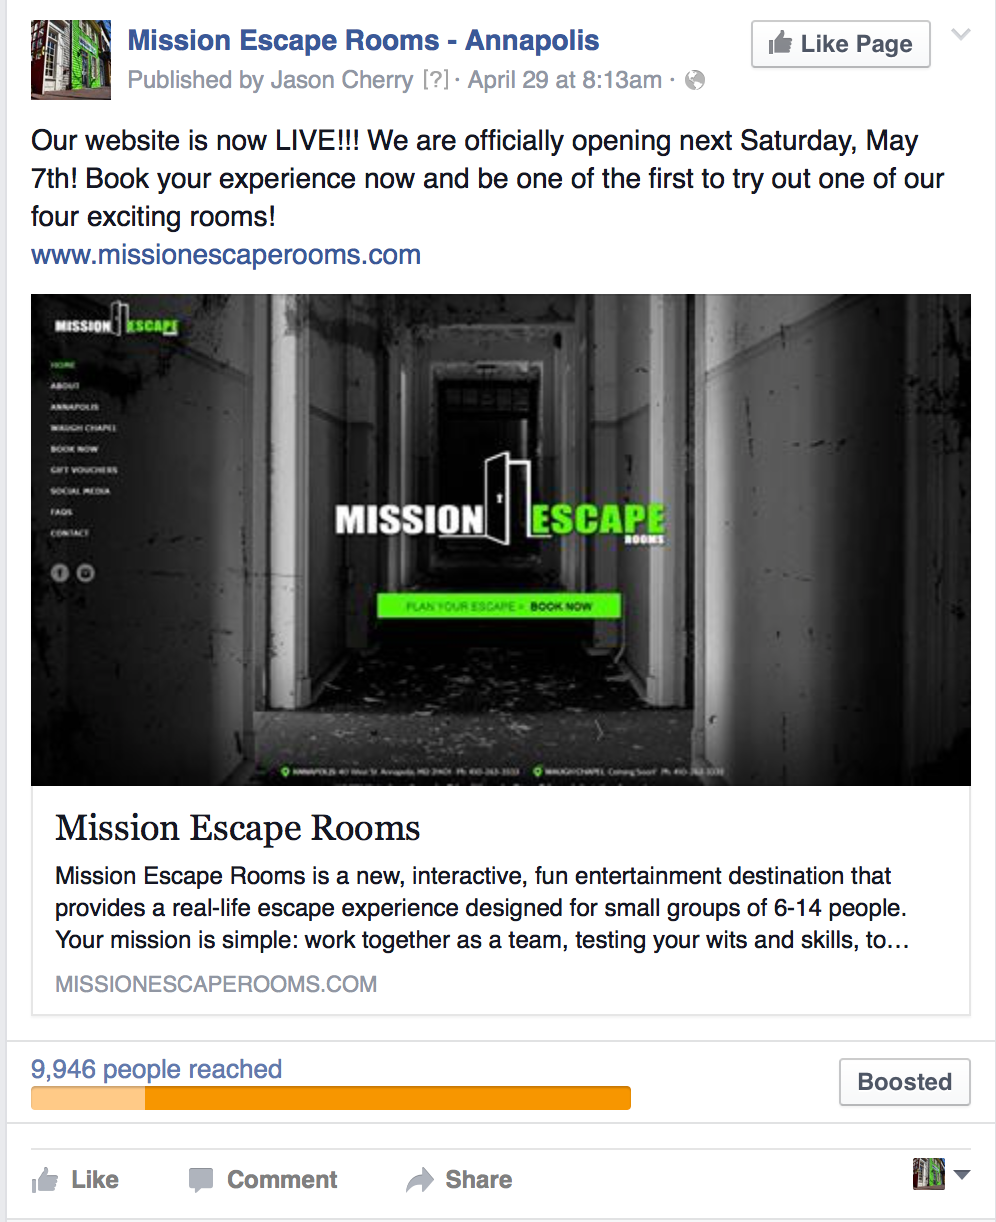 Social Media mention Mission Escape Rooms